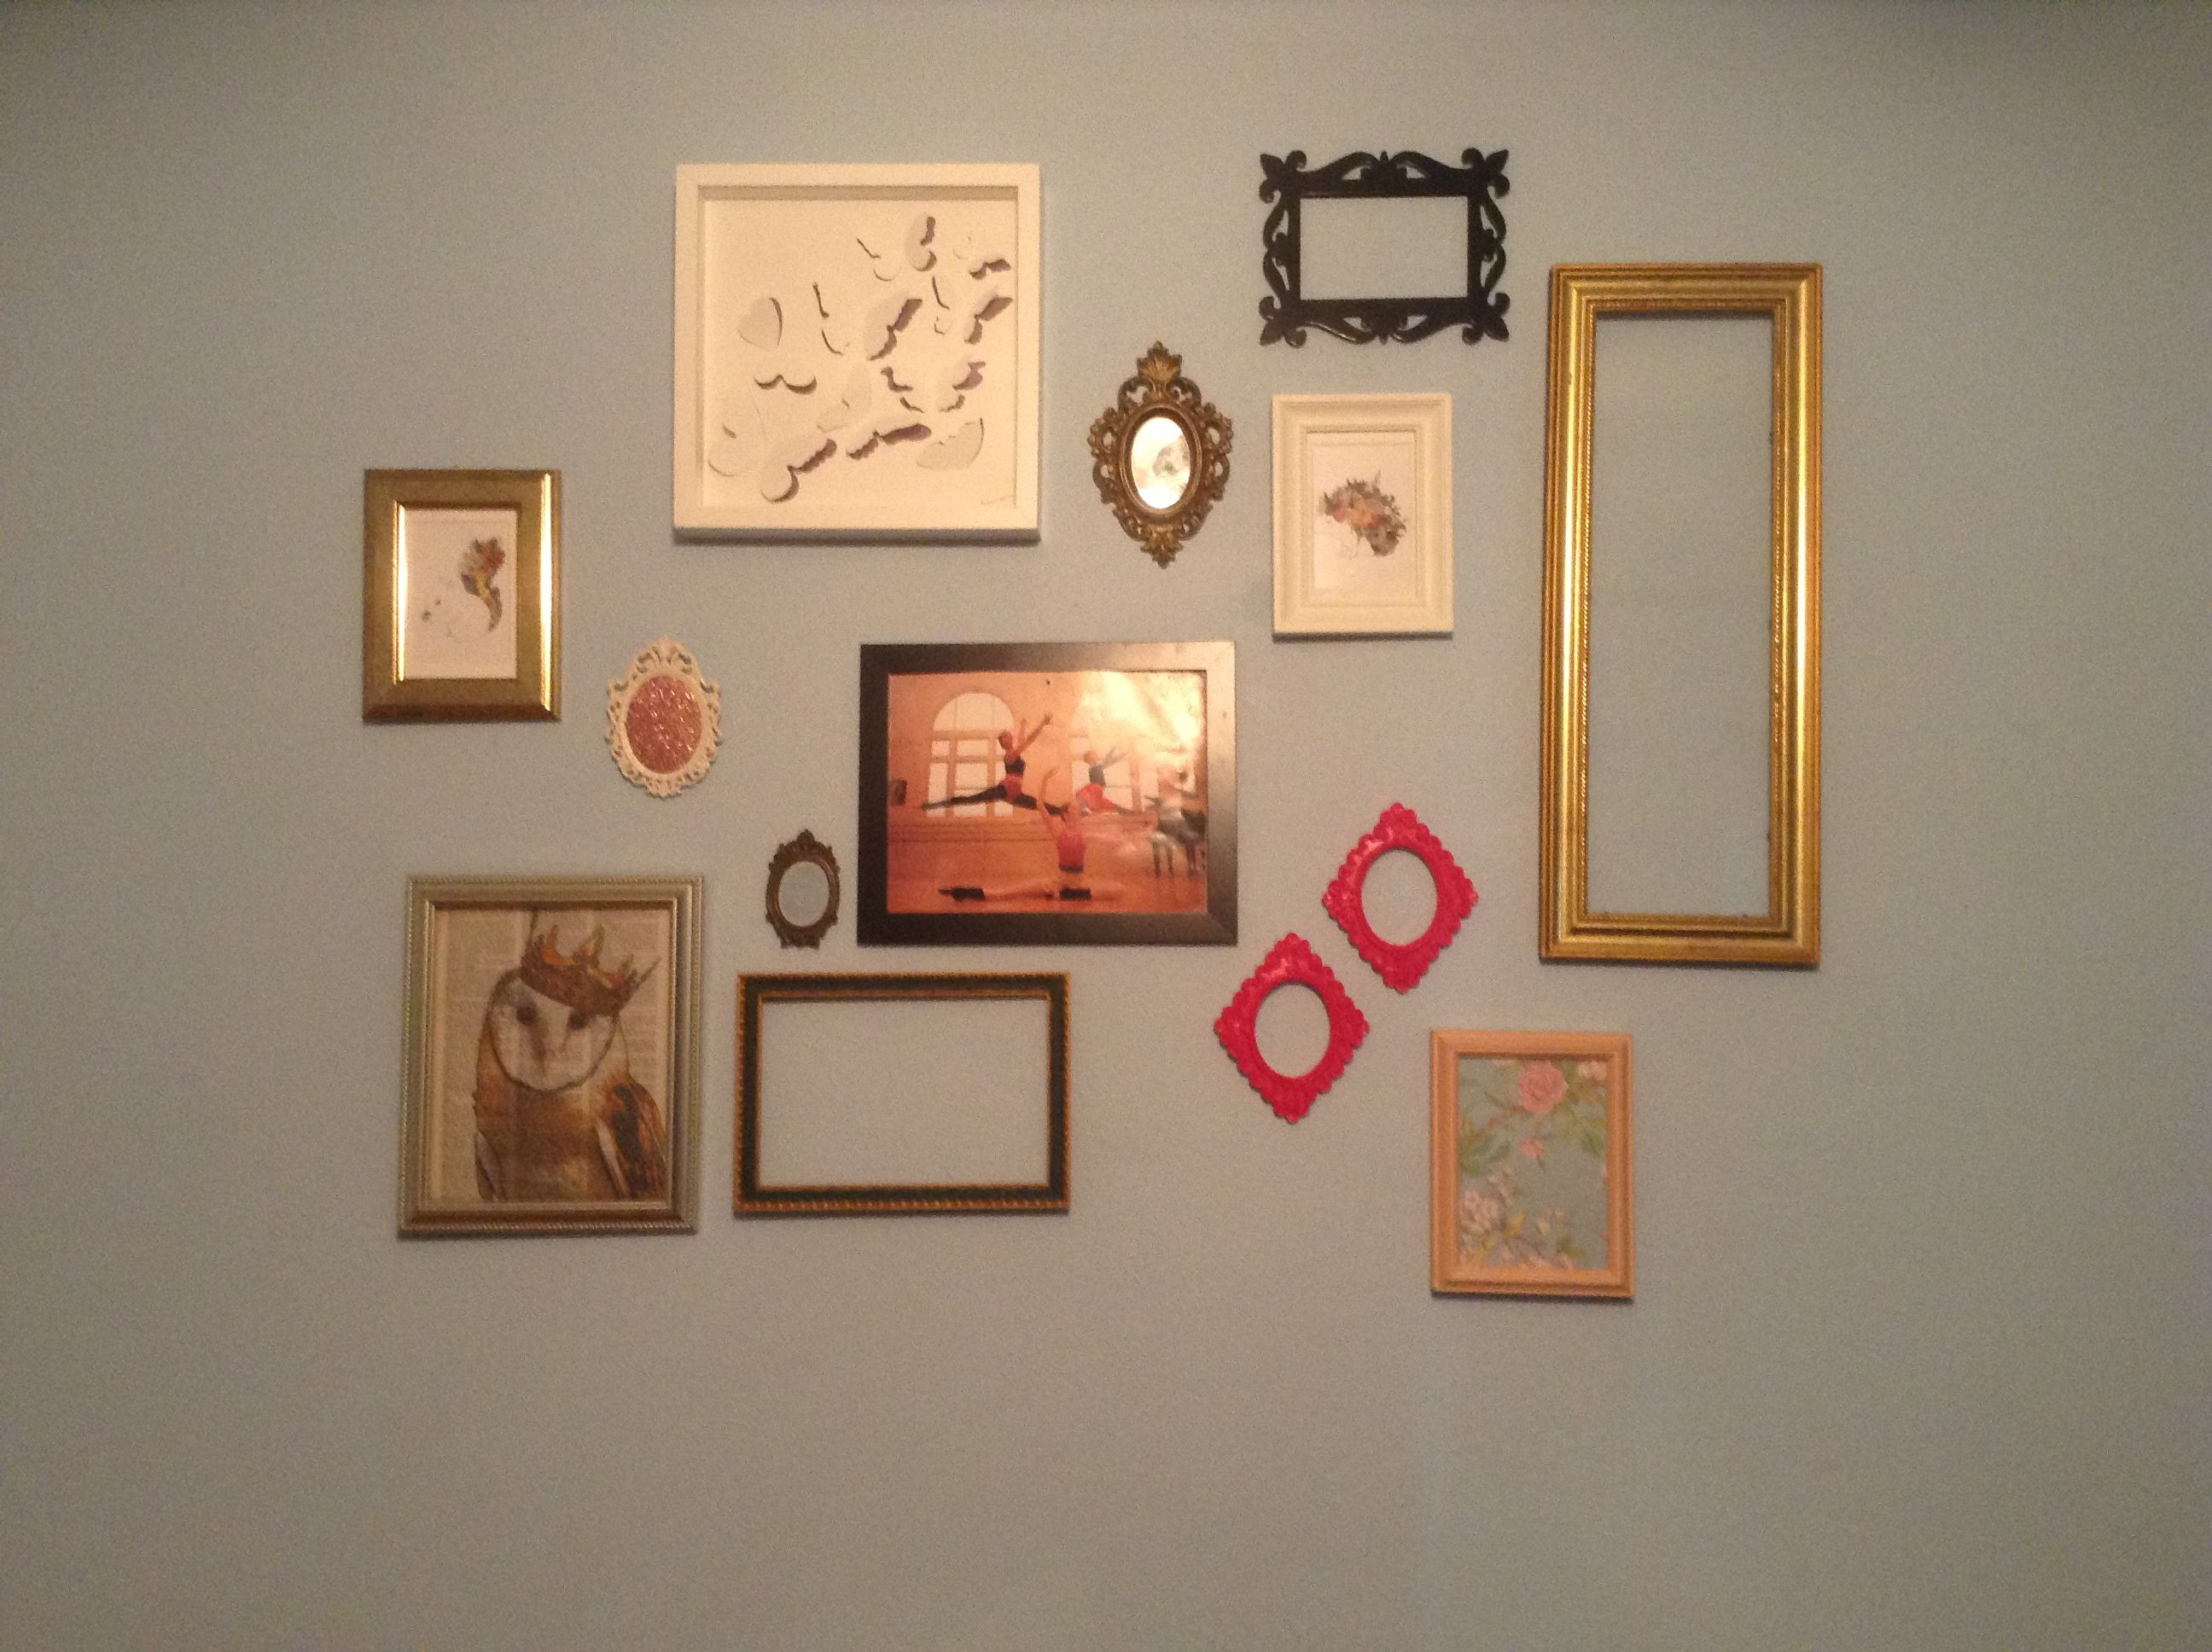 Bedroom Wall Frame Collage